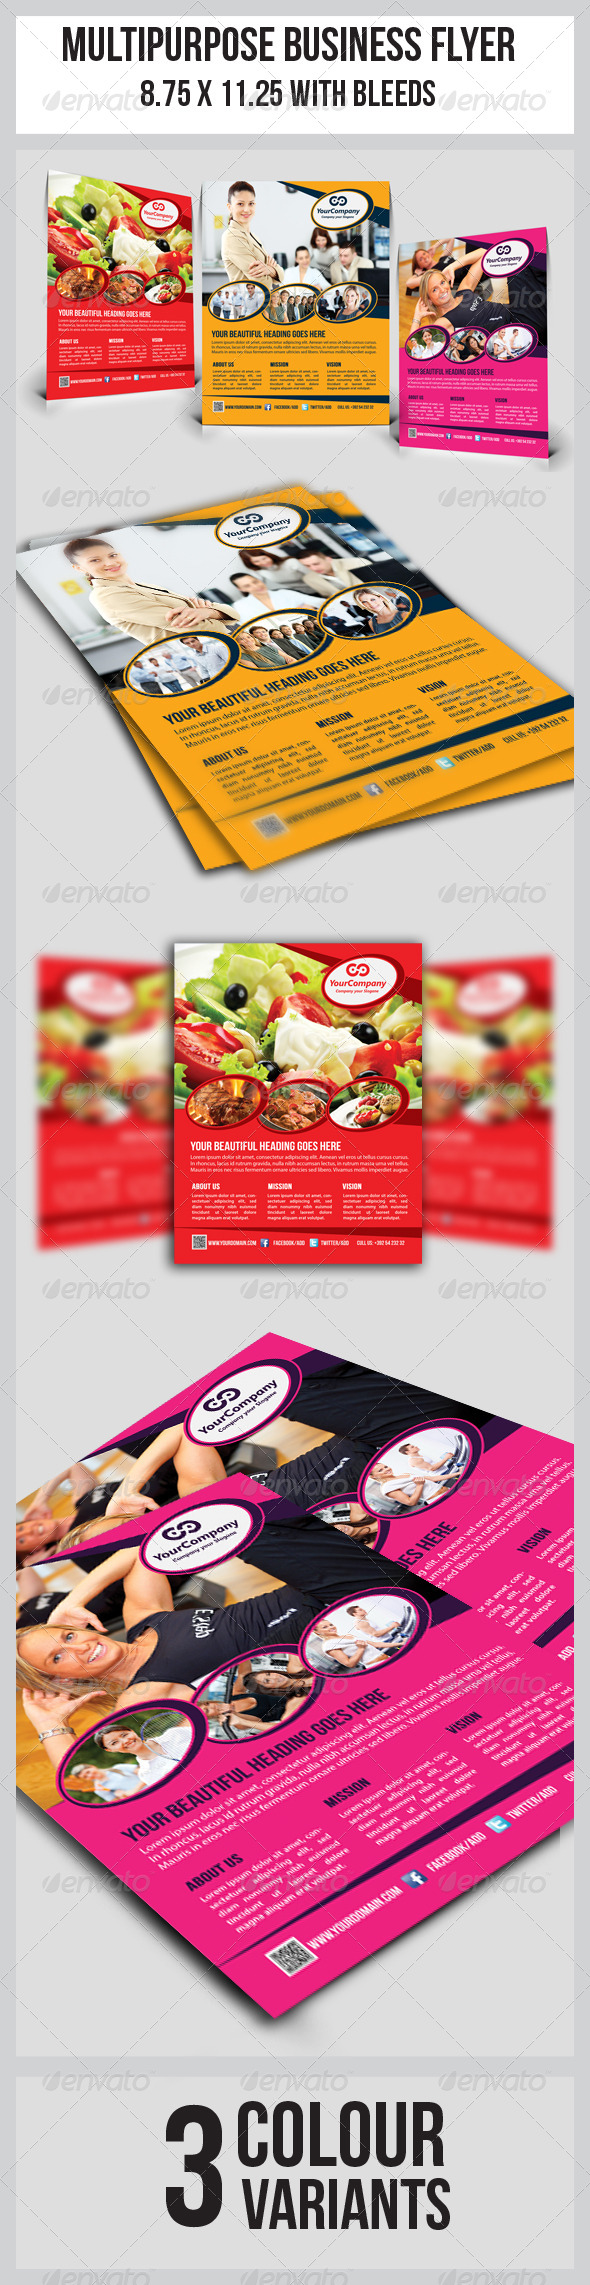 GraphicRiver Multipurpose Business Flyer 5674813